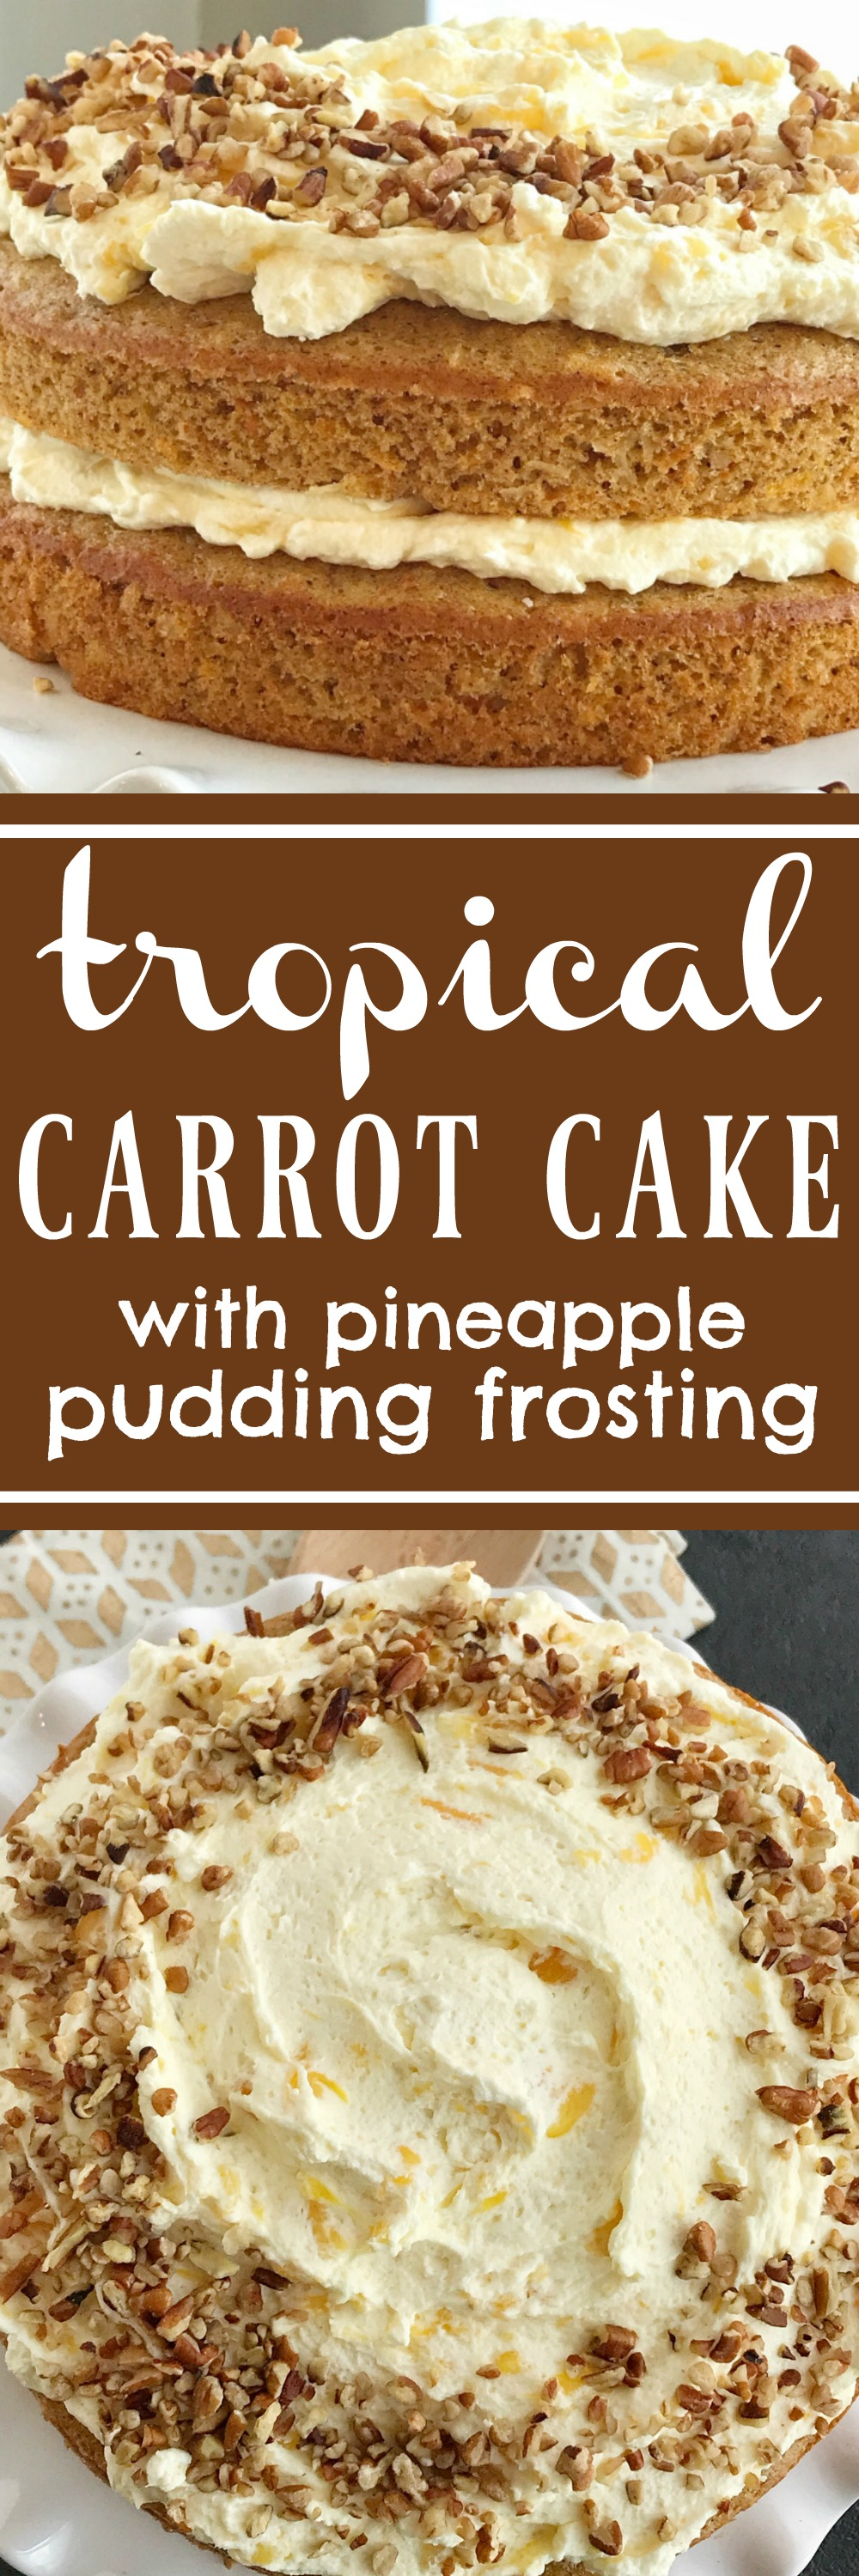 Best Traditional Carrot Cake Recipe